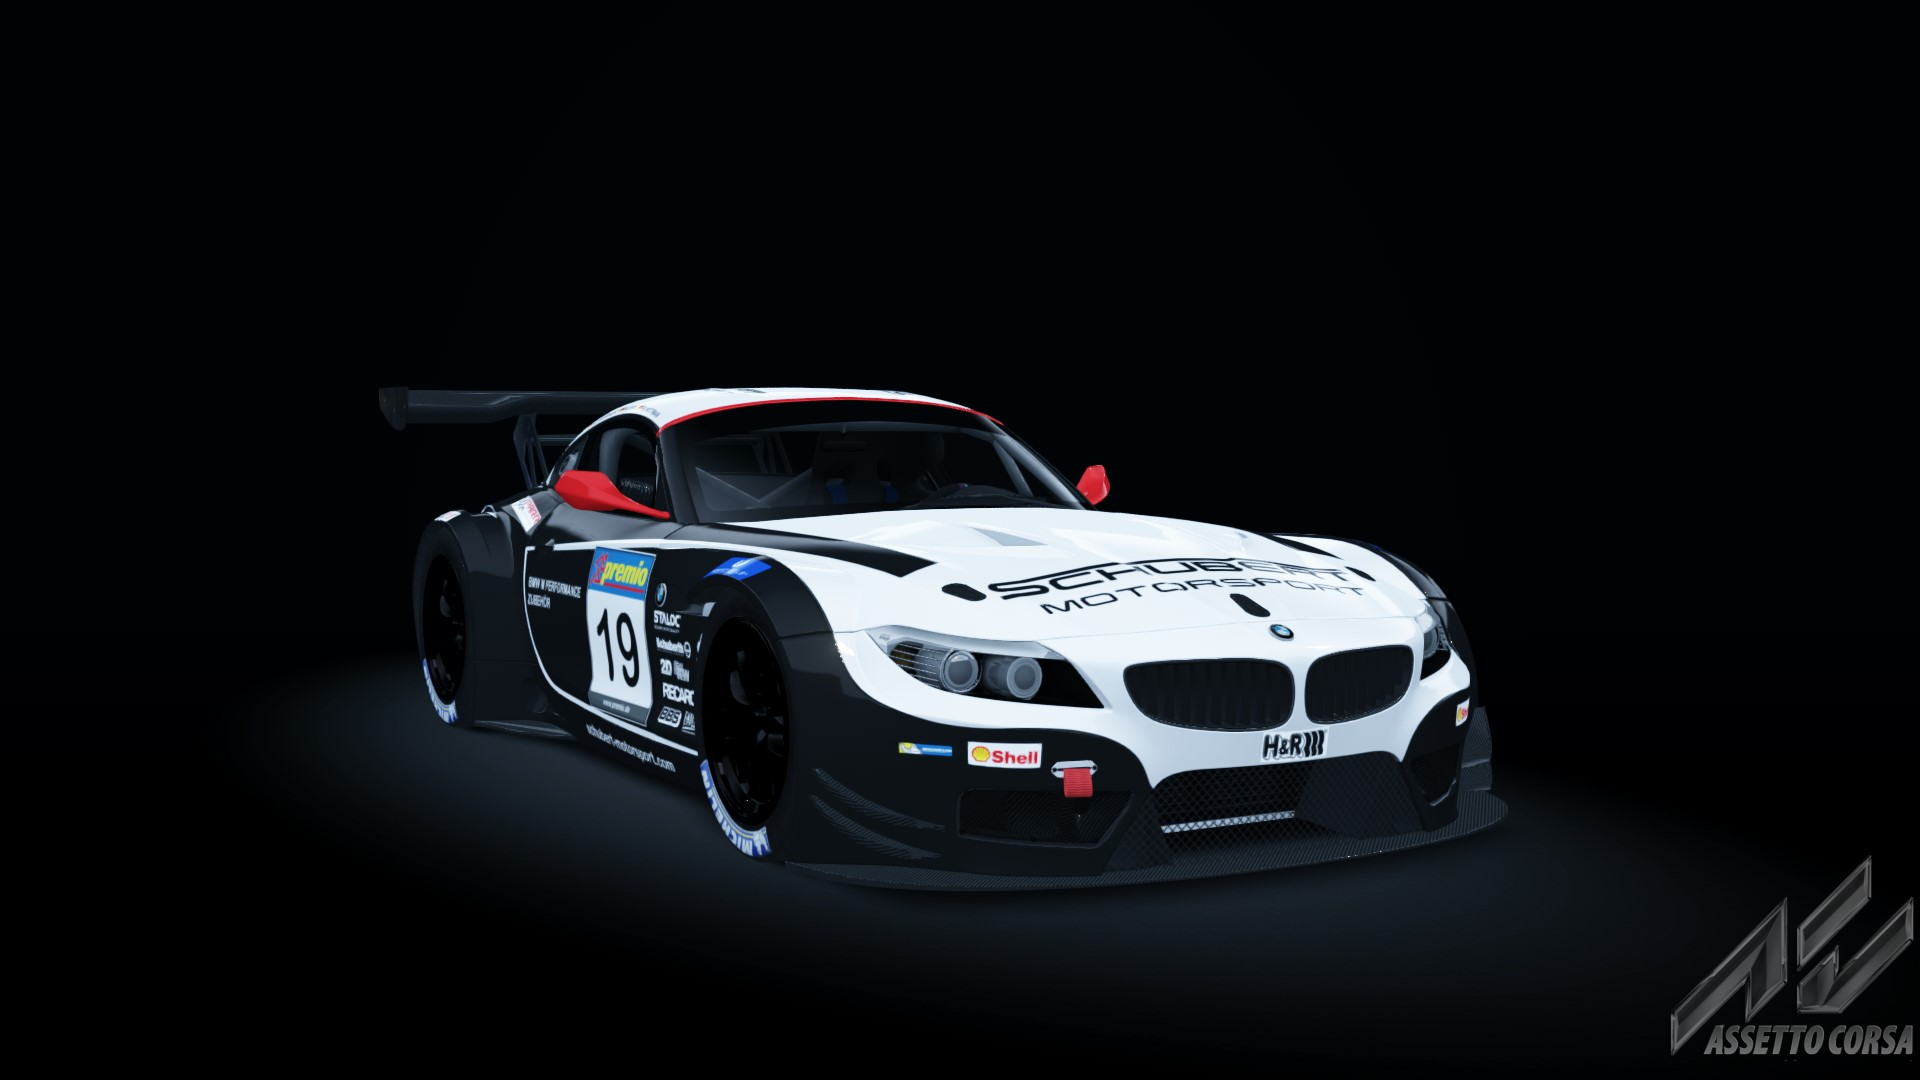 Showroom_bmw_z4_gt3_30-2-2015-19-26-45.jpg